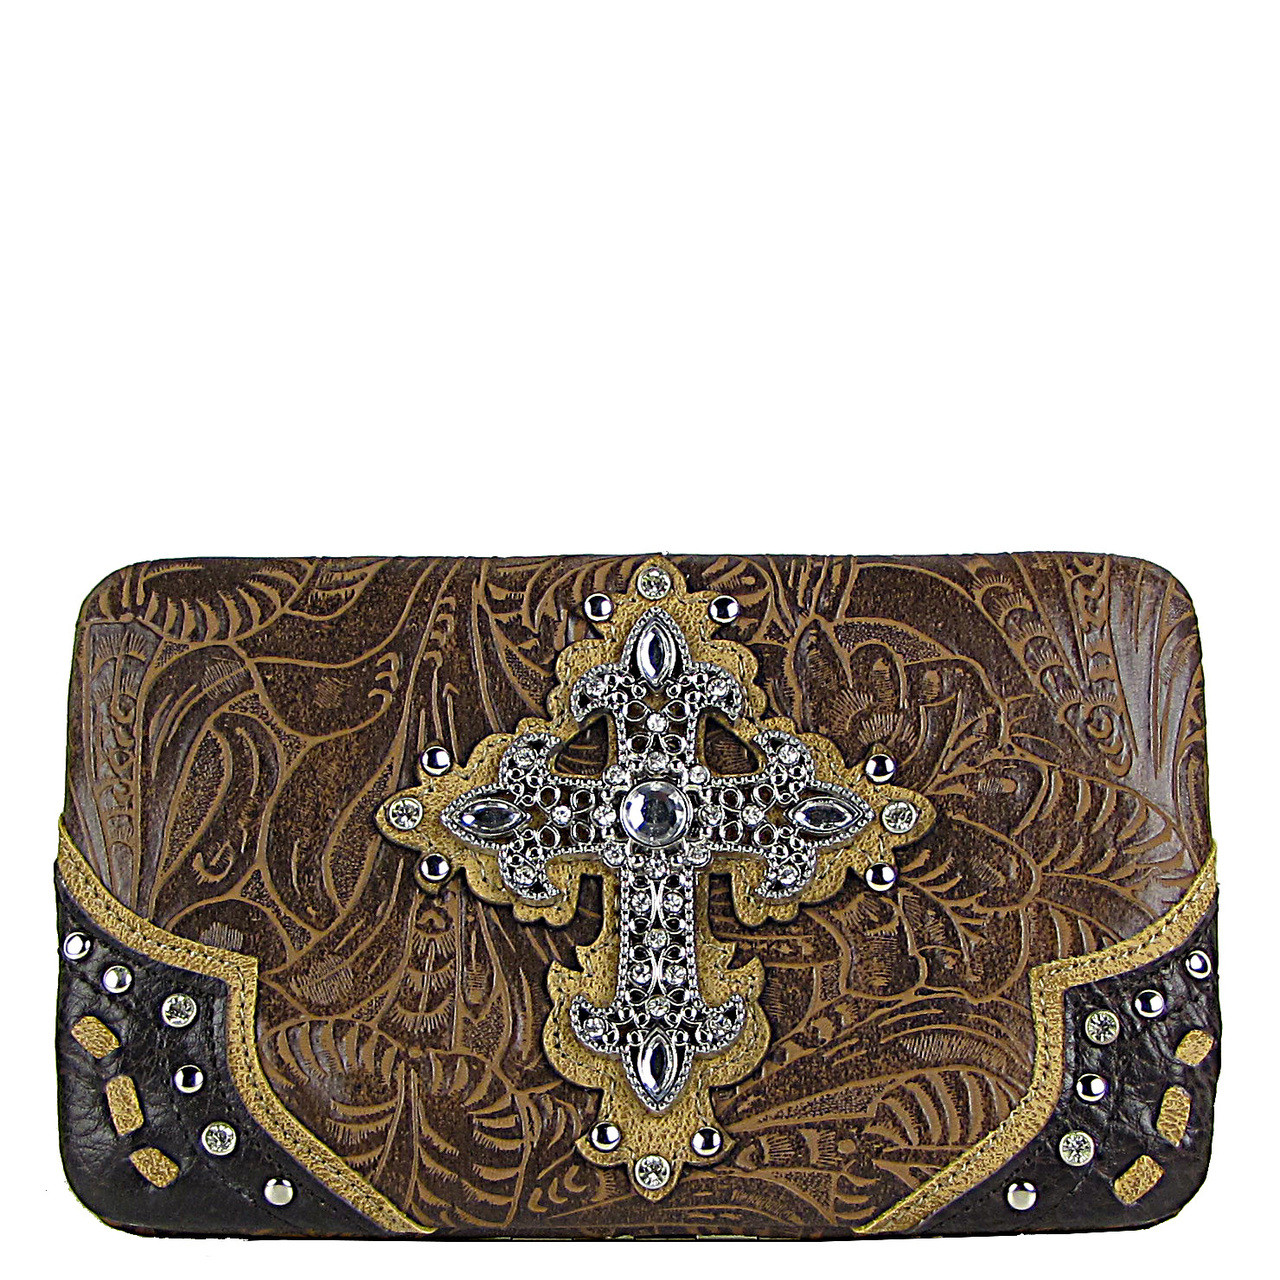 BROWN TOOLED WESTERN RHINESTONE CROSS LOOK FLAT THICK WALLET FW2-0438BRN